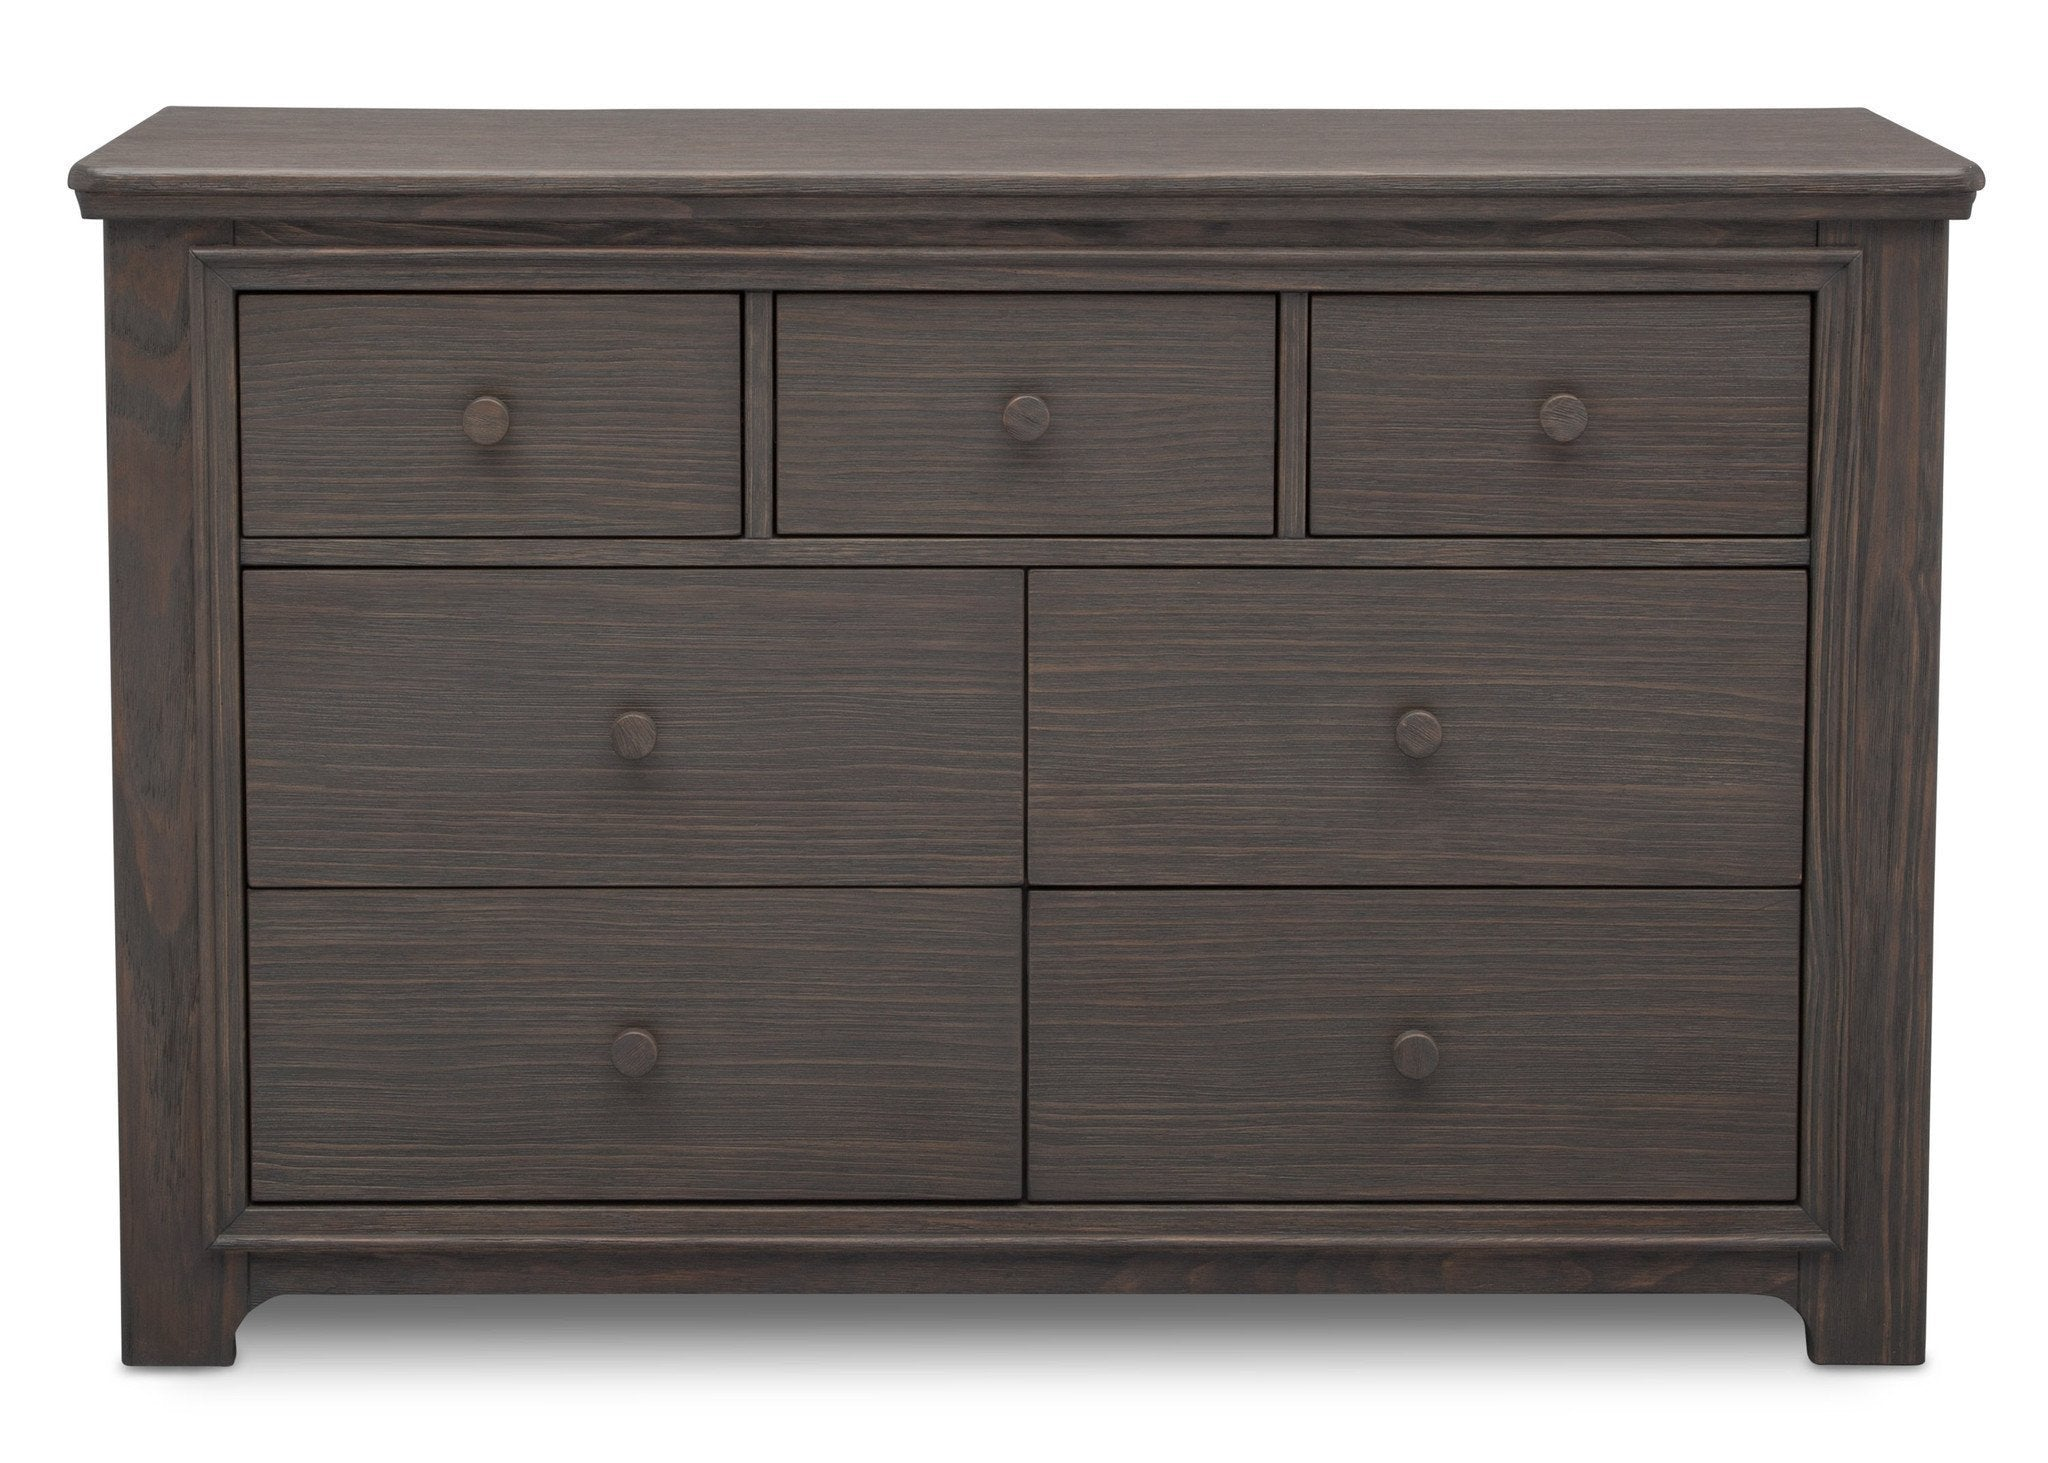 Serta Rustic Grey (084) Langley 7 Drawer Dresser, Front View a1a